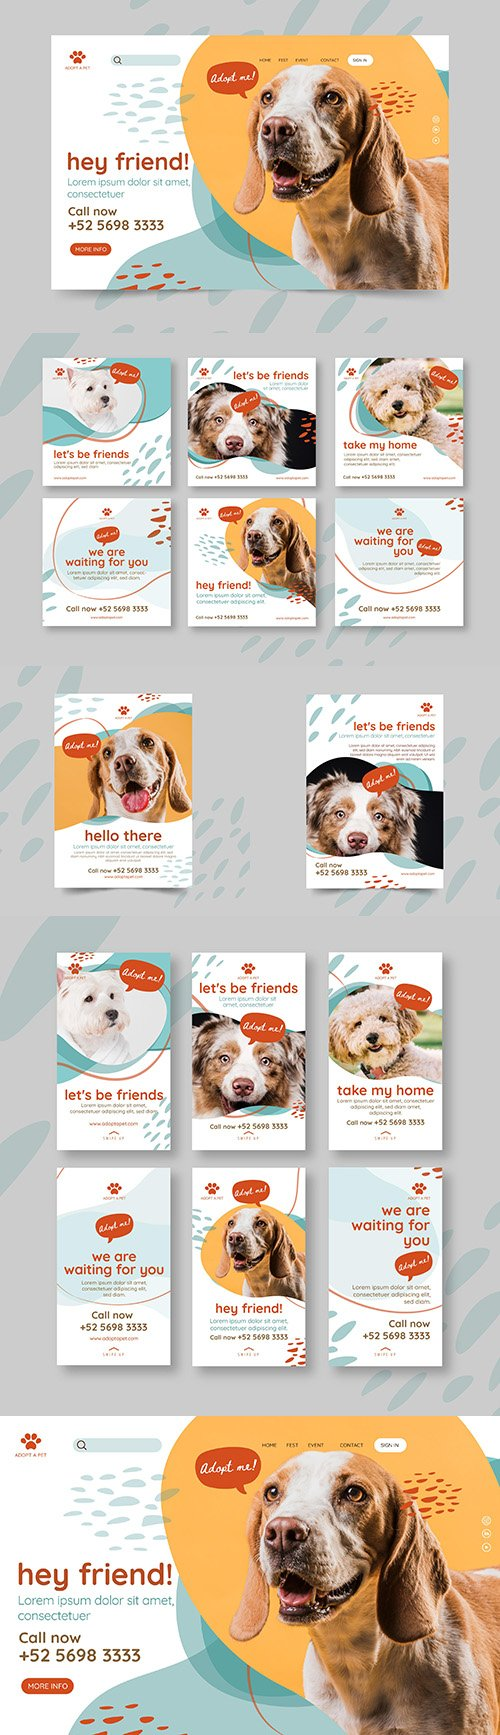 Pets stories on Instagram and poster design template